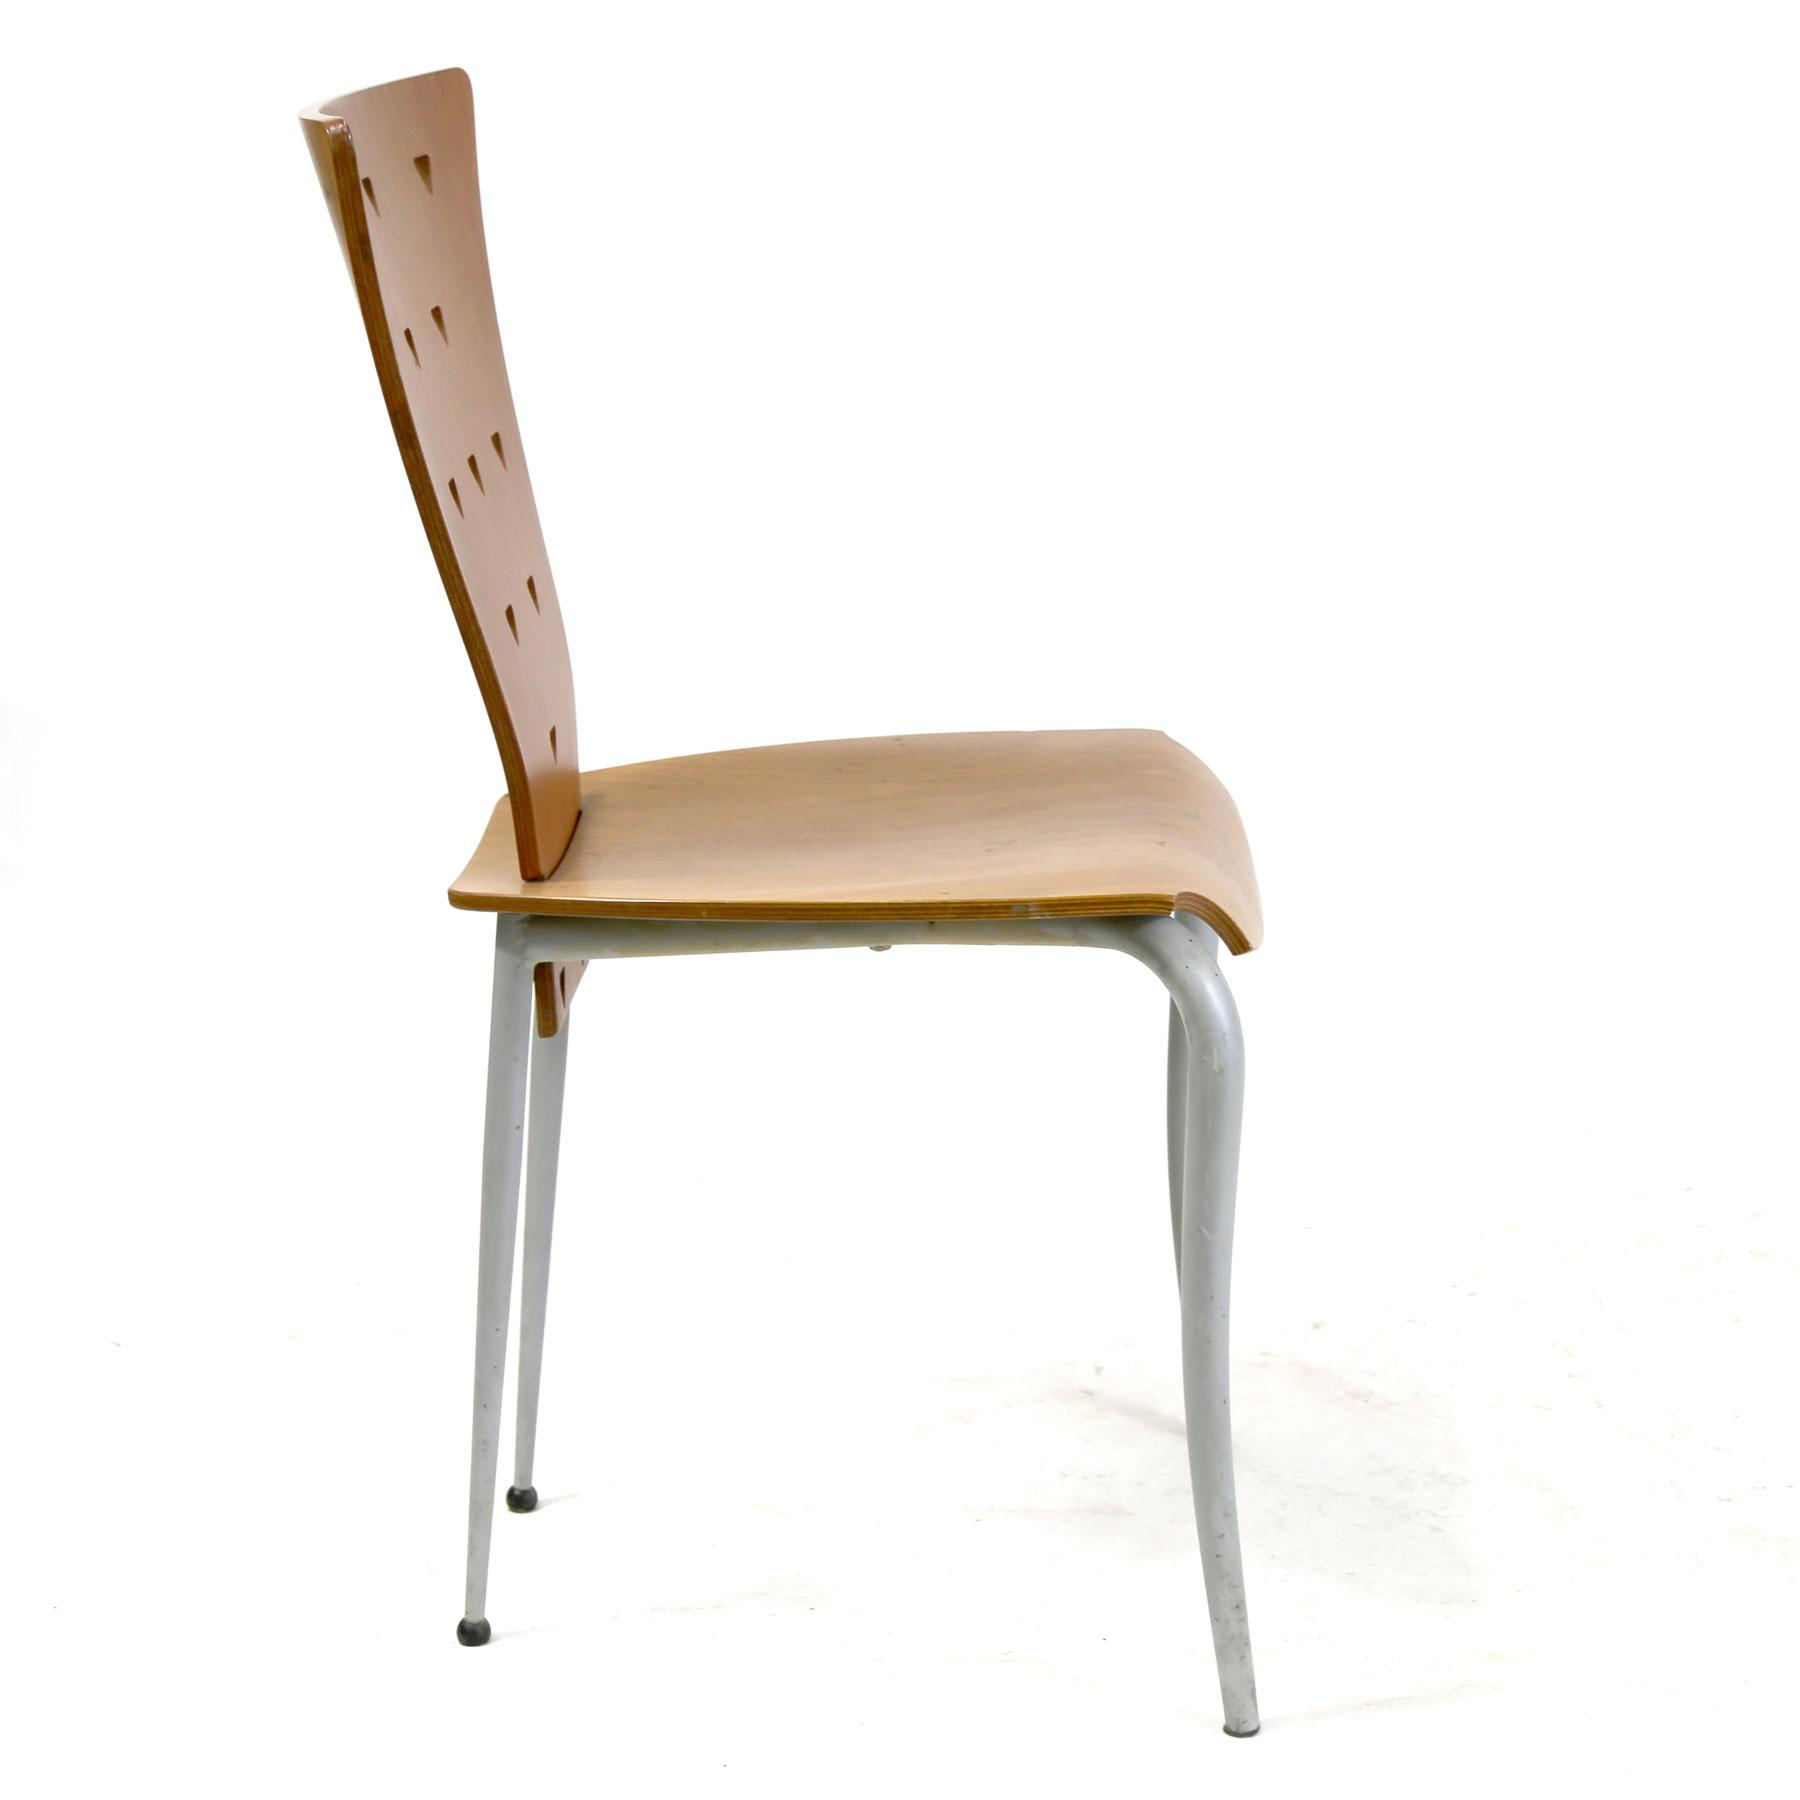 1990s Italian Post Modern Memphis Style Side Chair With Molded Plywood Back  U0026 Seat Triangle Motif